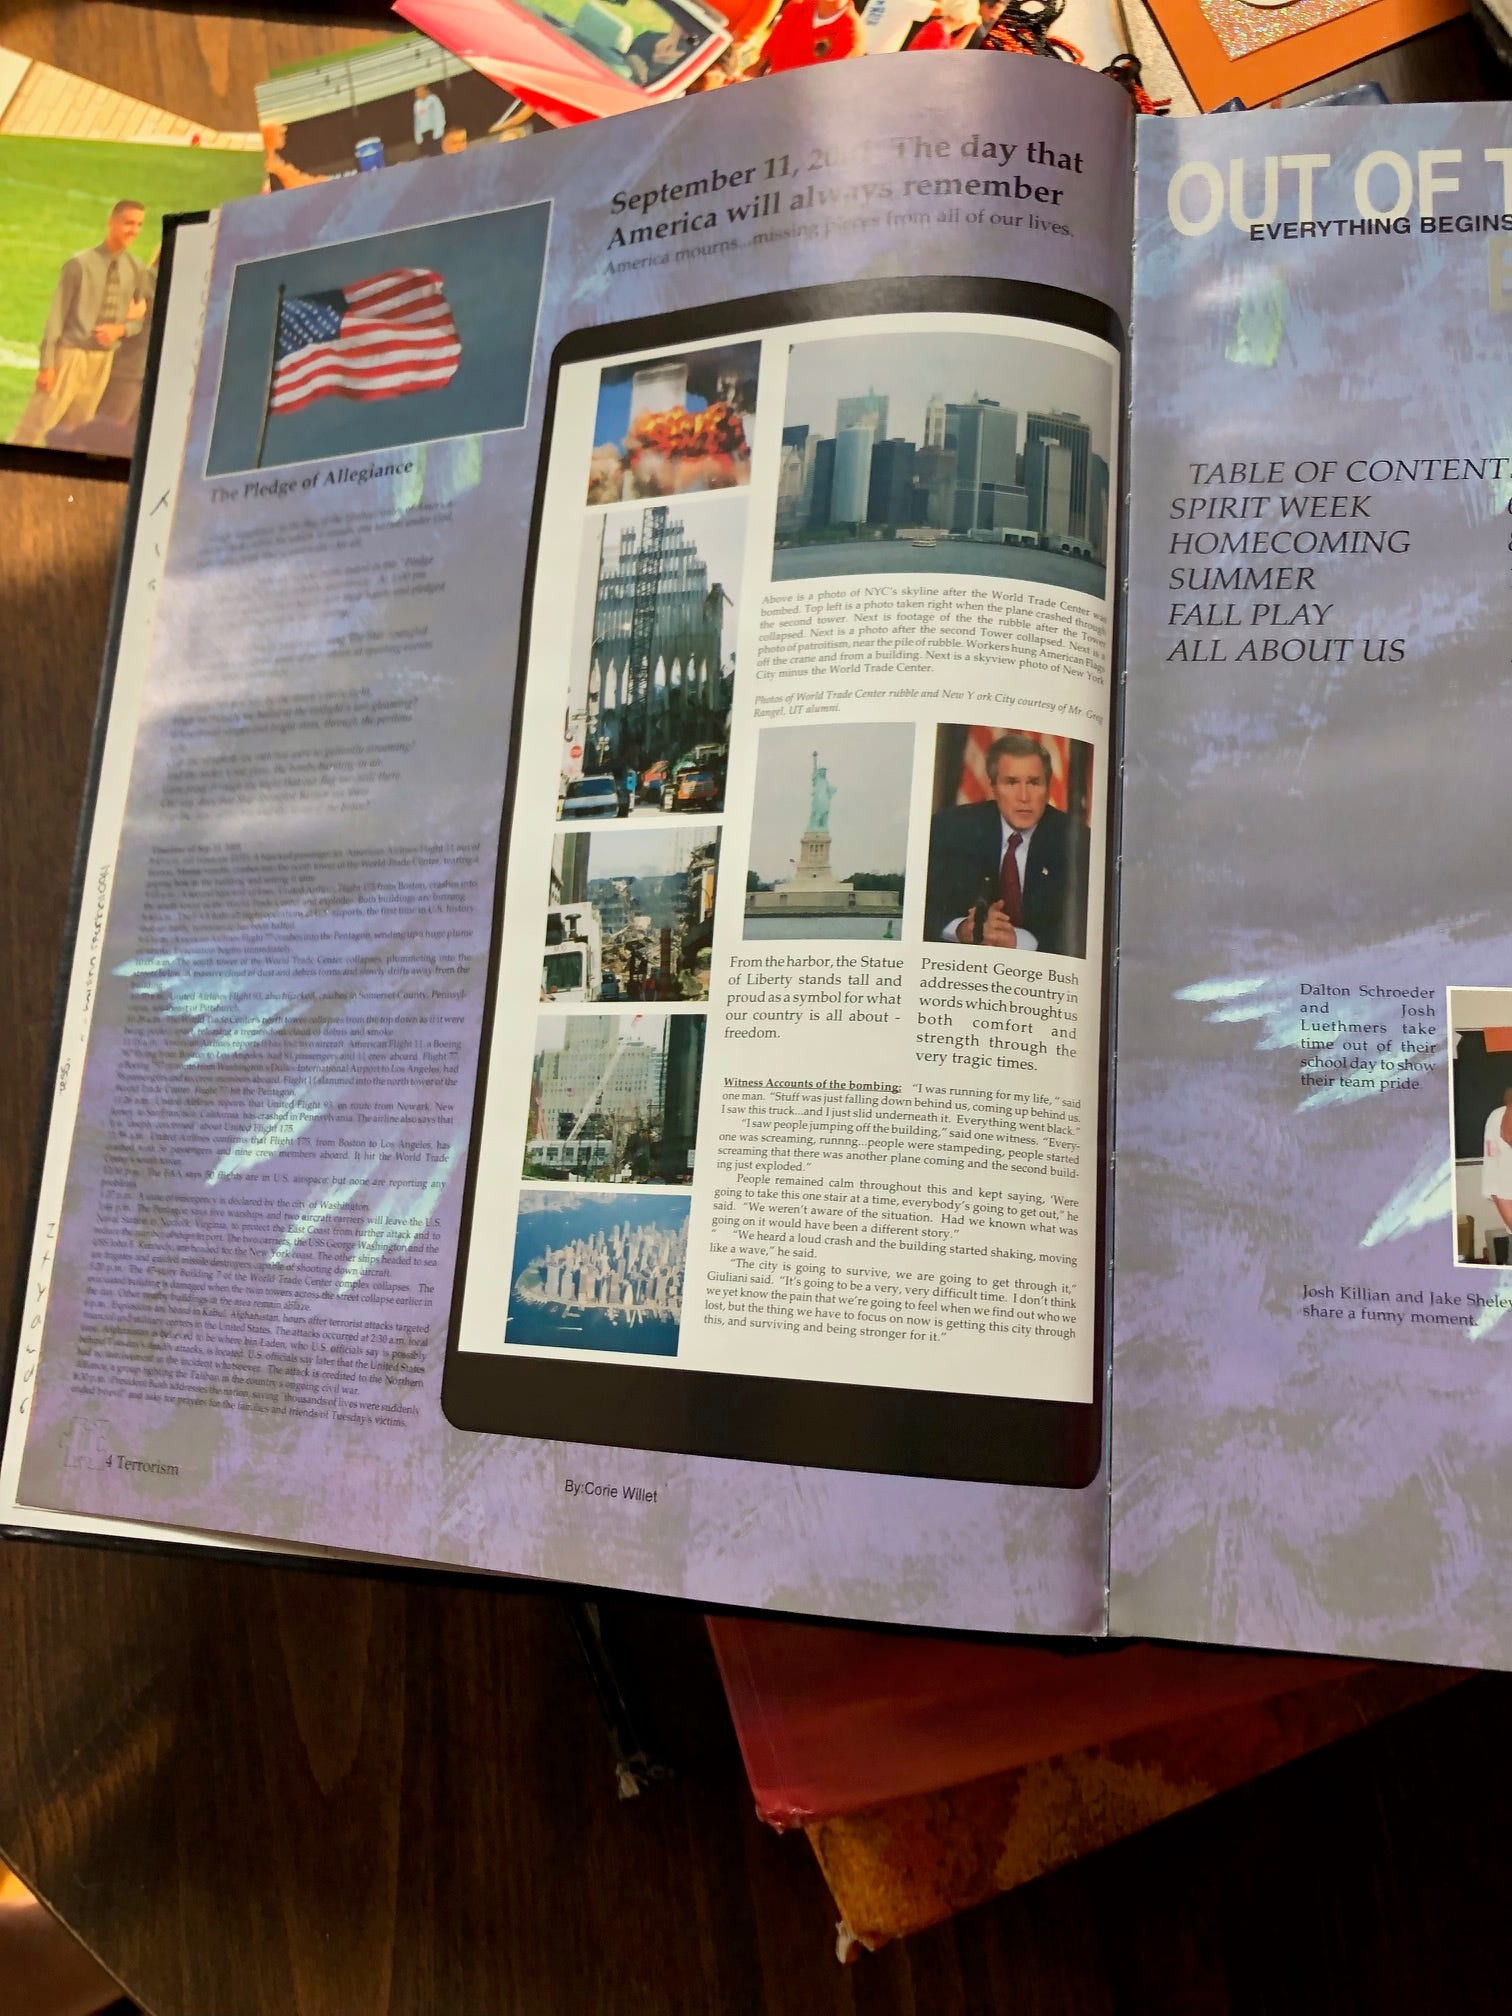 United Township High School's yearbook for 2002 dedicated a page to 9/11.